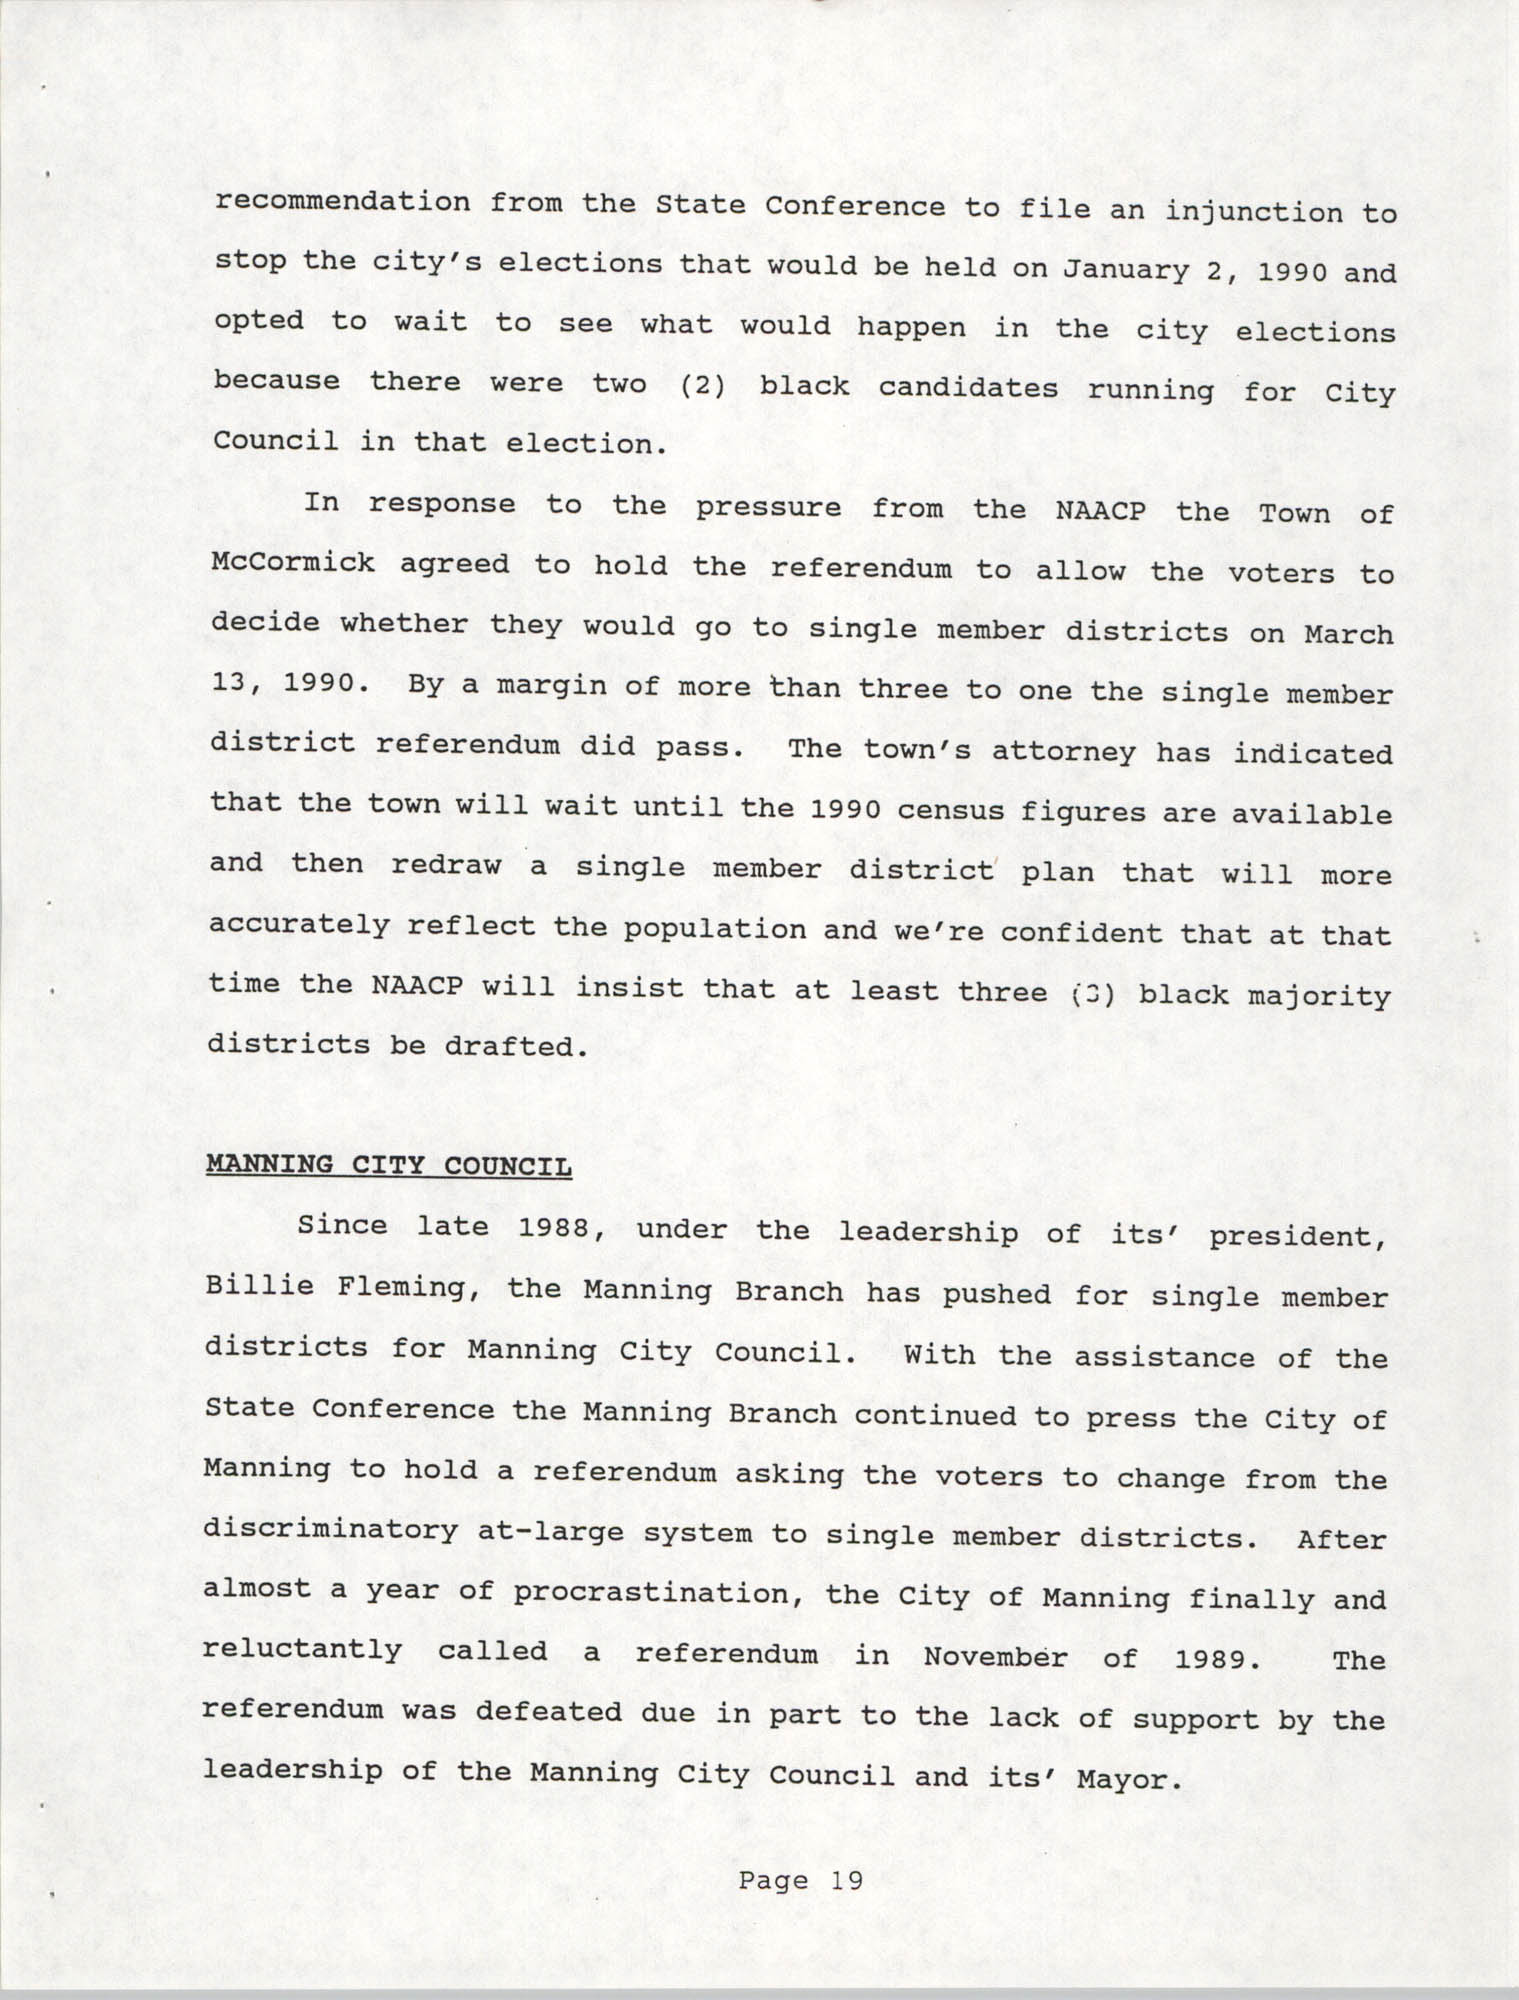 South Carolina Conference of Branches of the NAACP, 1990 Annual Report, Part One, Page 19